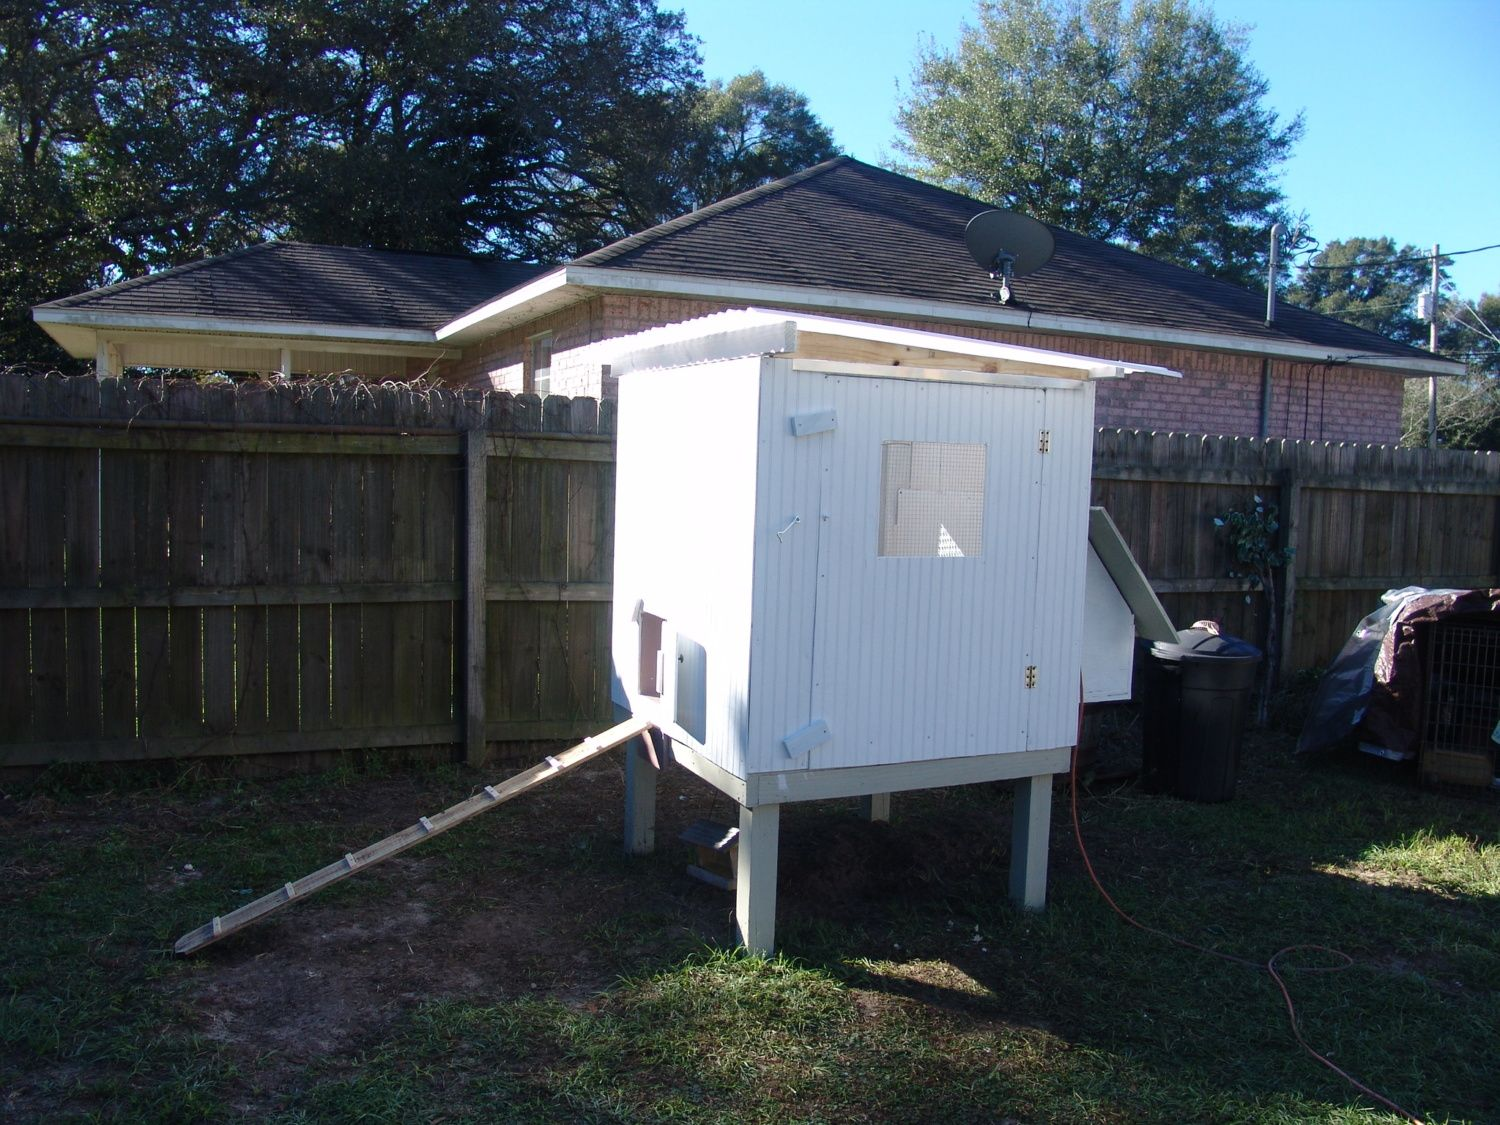 "My finished coop its 4 x 4 x4 with a nest box and 24"" off the ground."